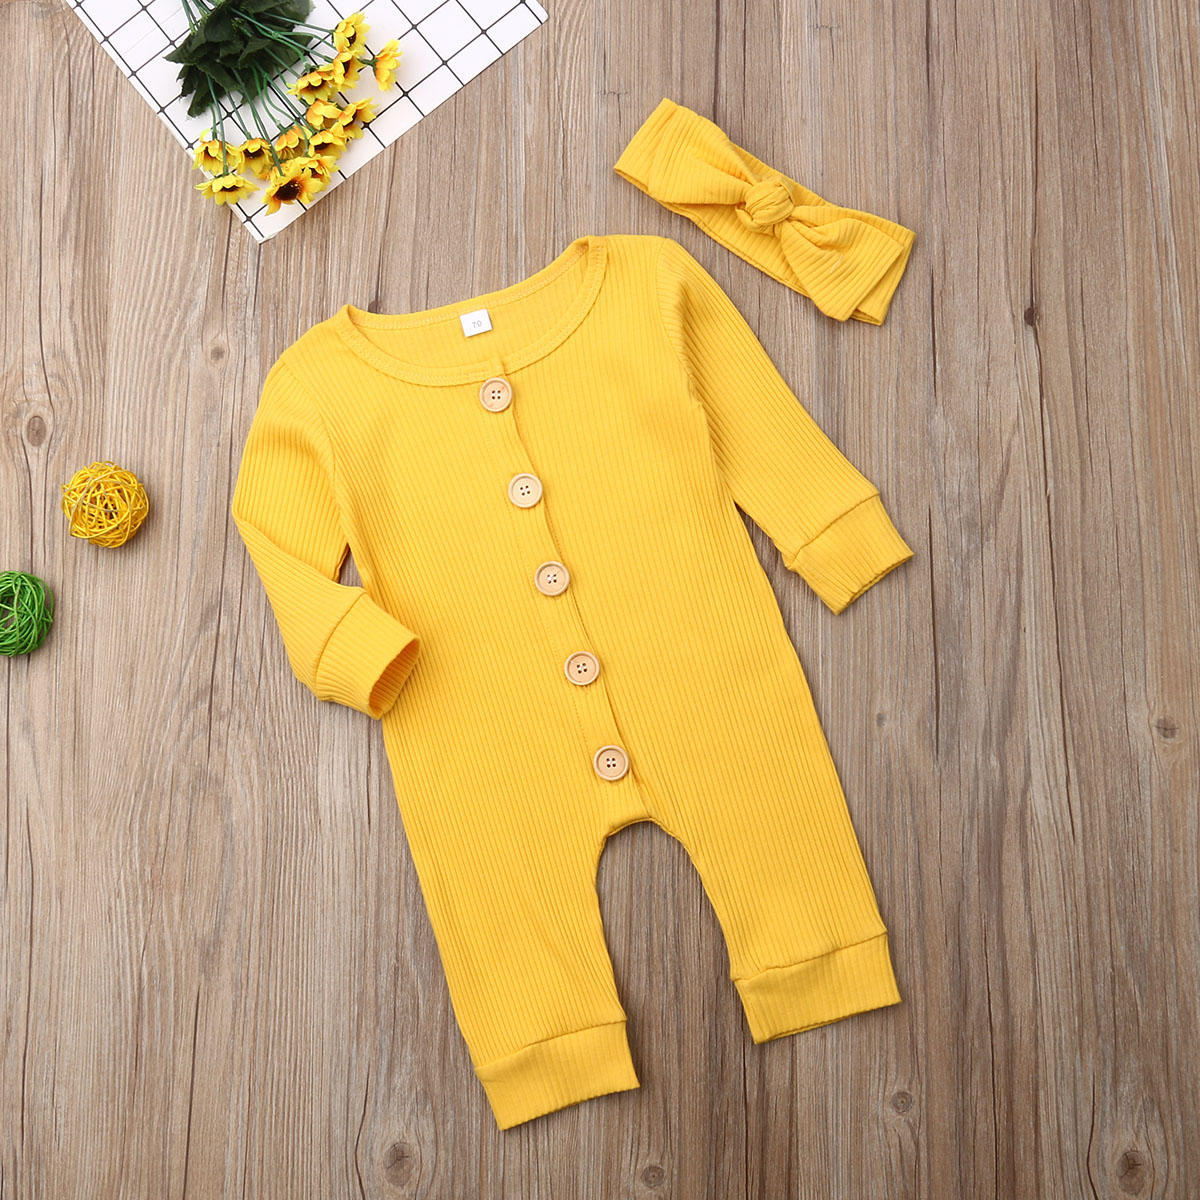 Ha023ca38aab94b9f813d7e3299d1d400U Spring Fall Newborn Baby Girl Boy Clothes Long Sleeve Knitted Romper + Headband Jumpsuit 2PCS Outfit 0-24M